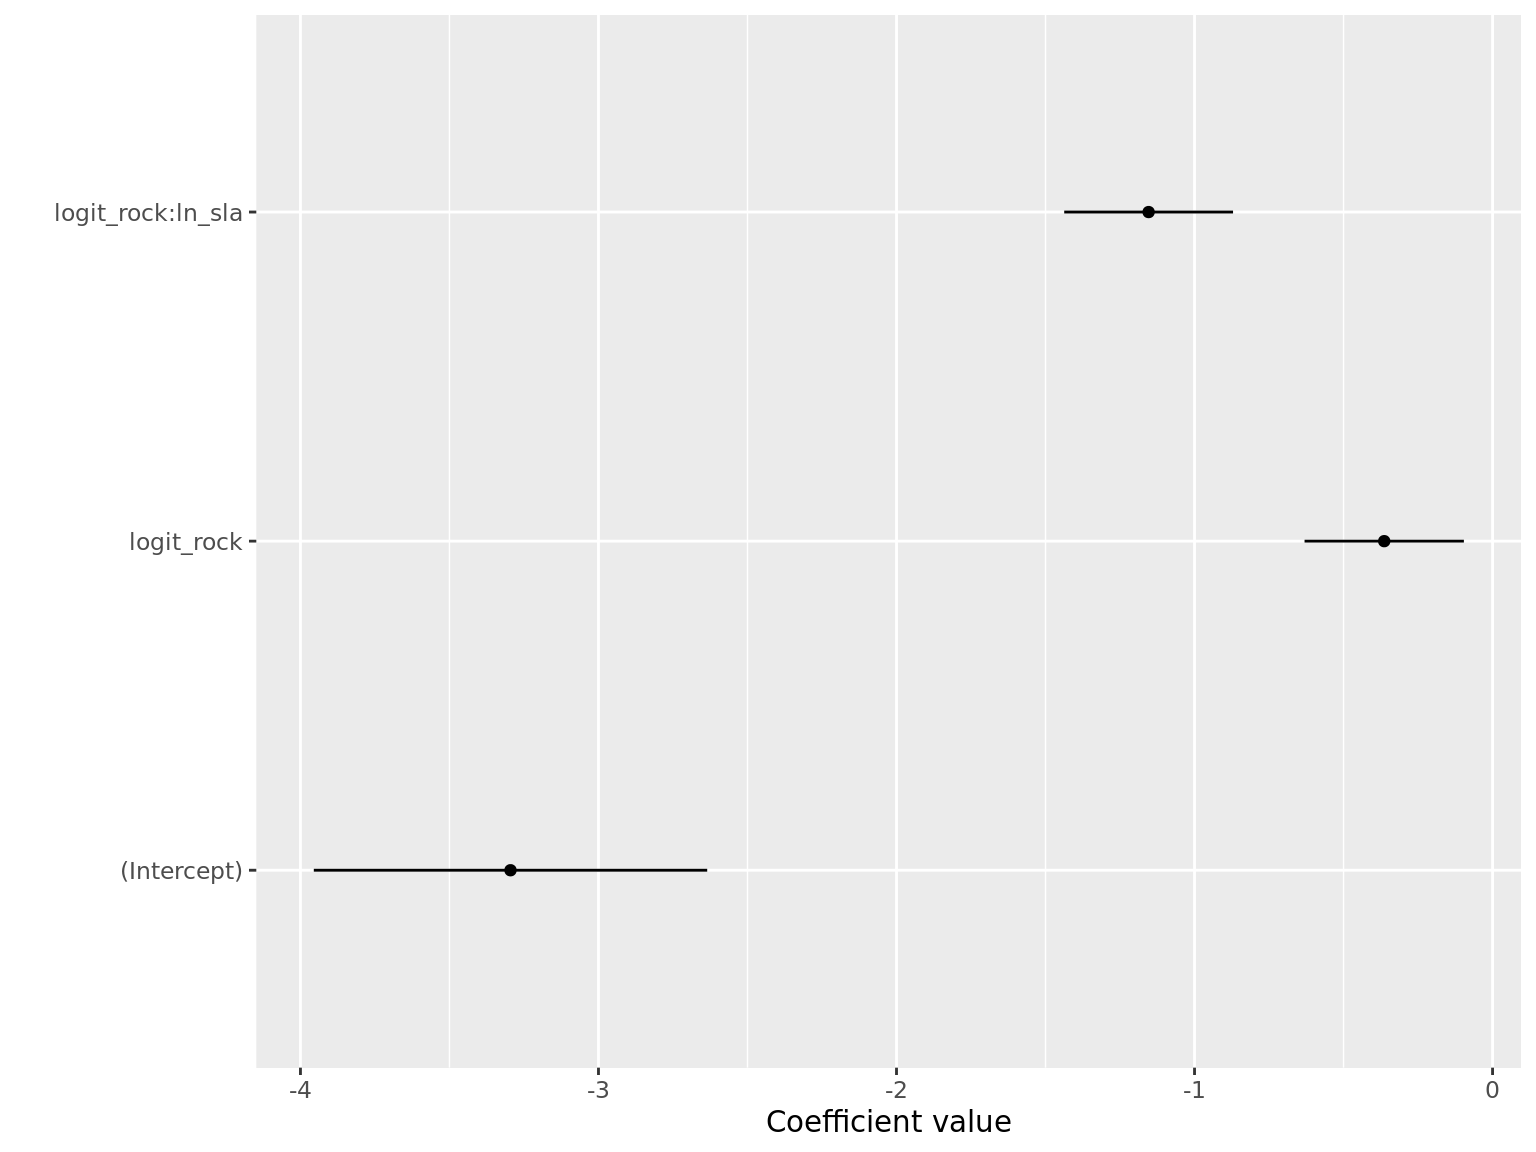 Coefficient plot